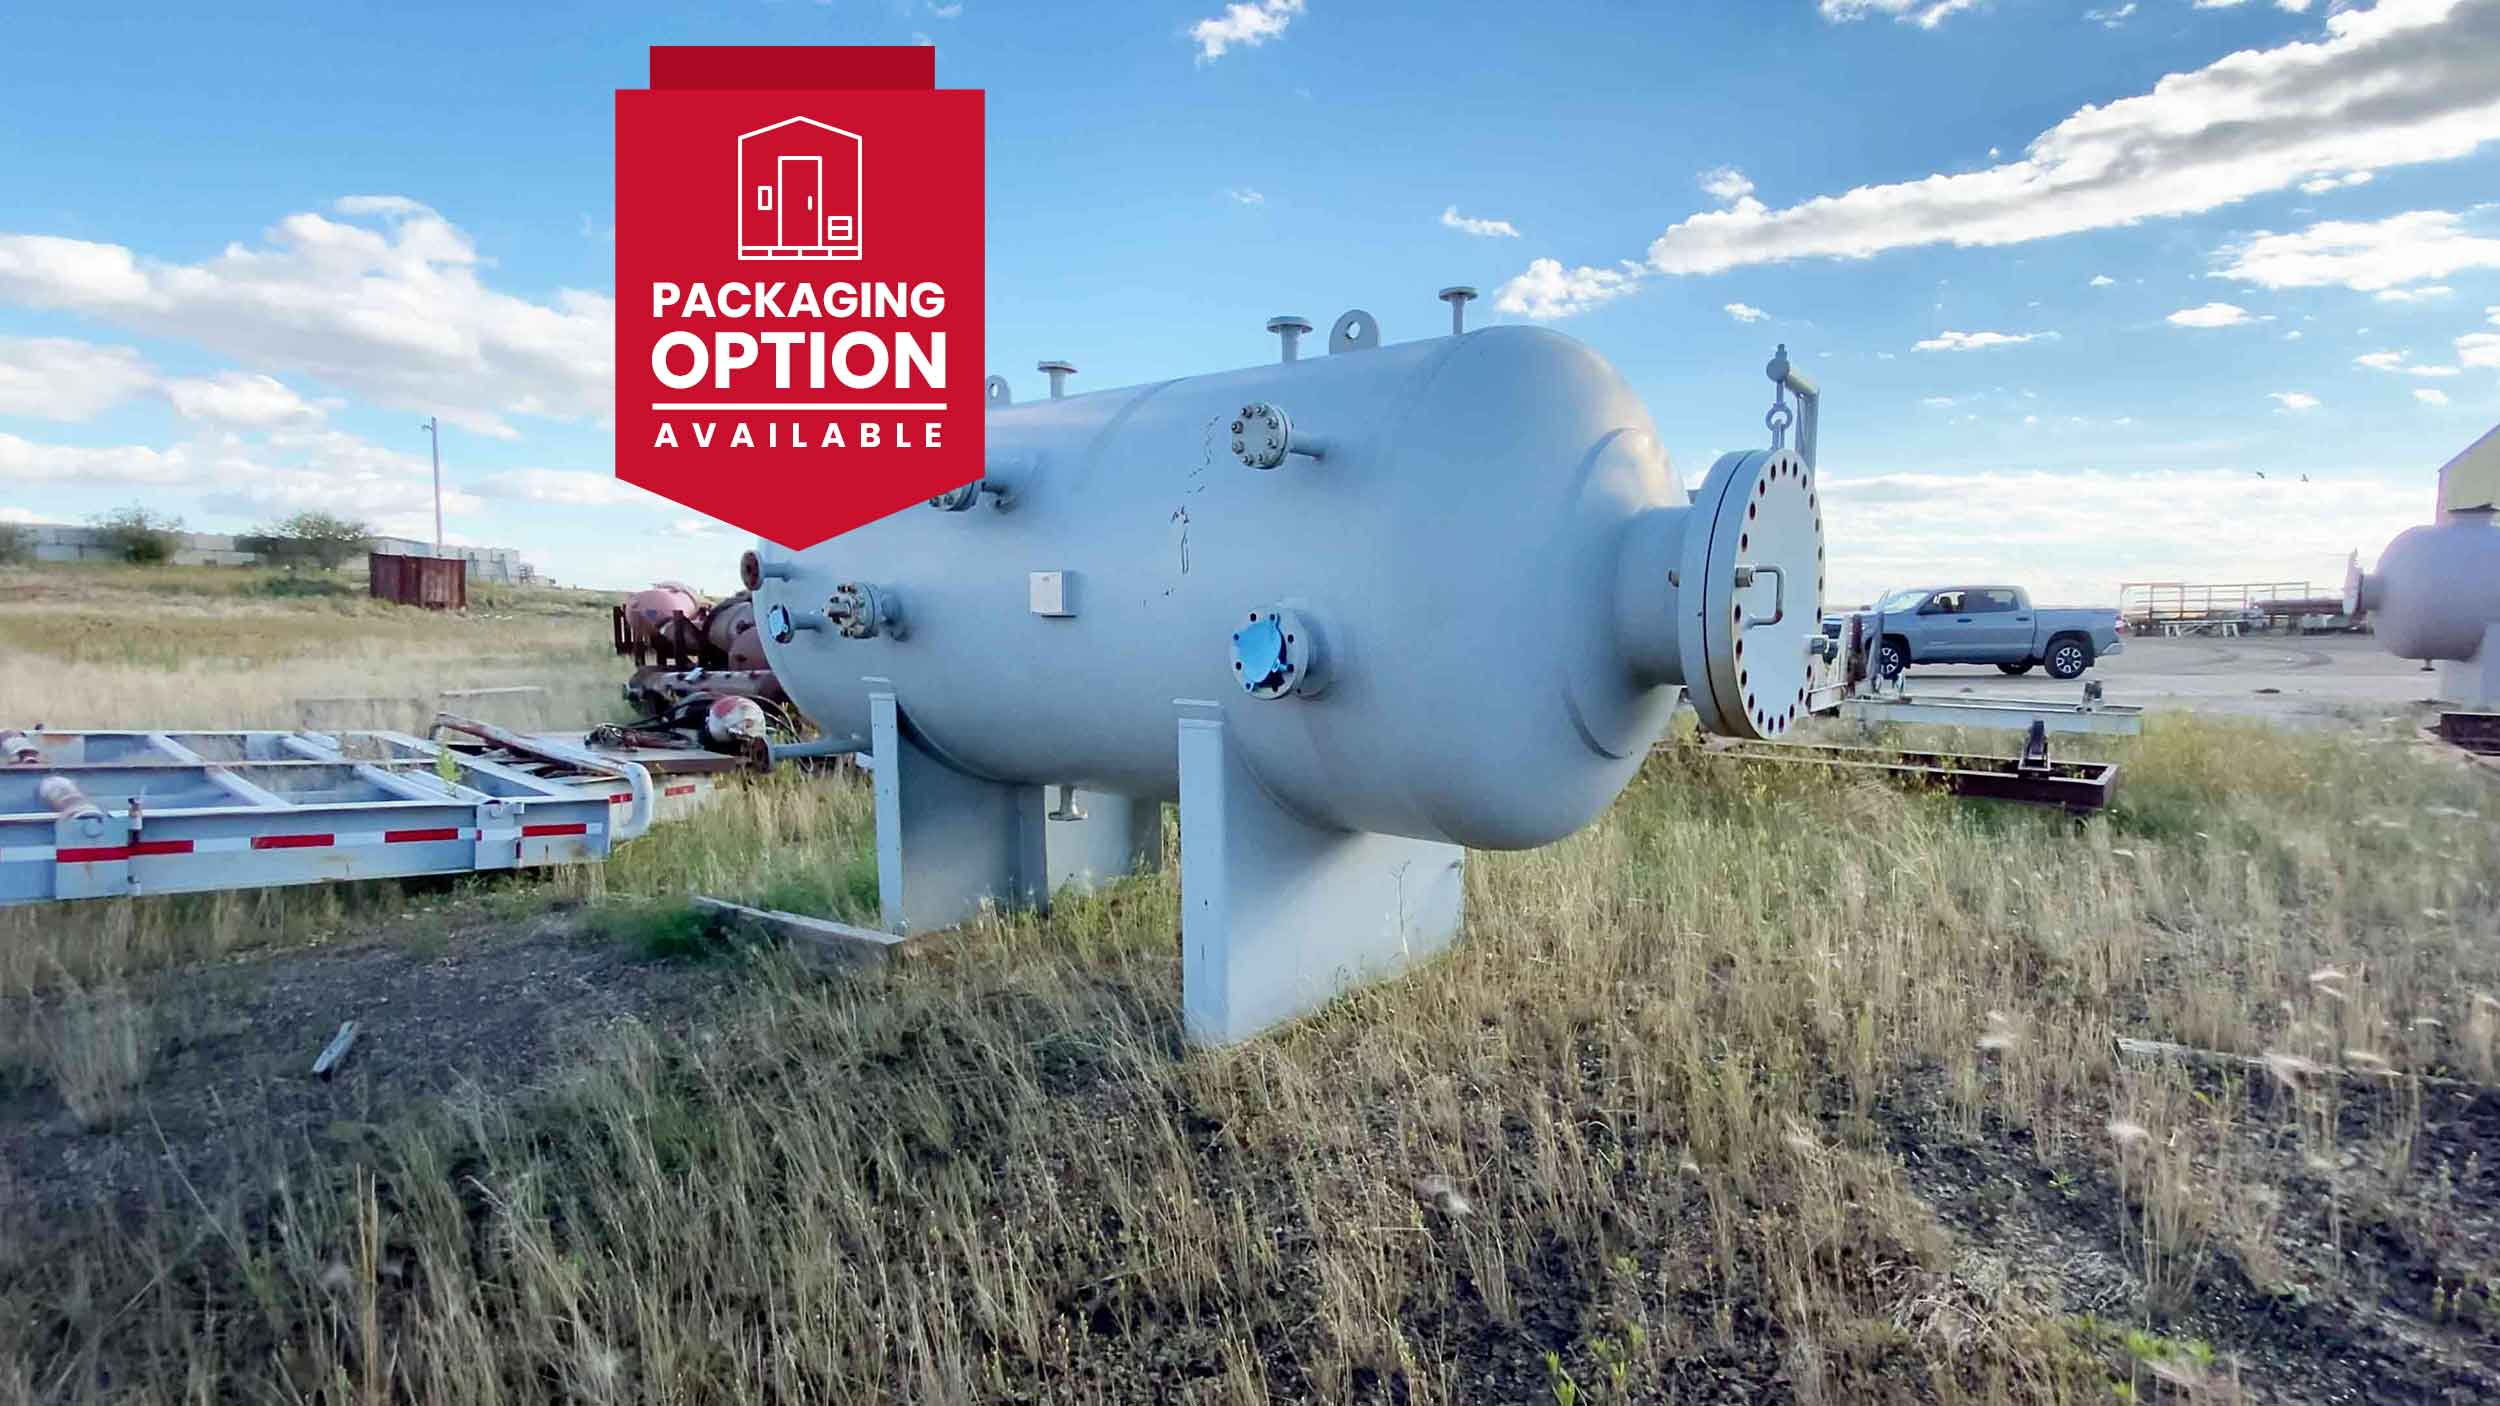 """New never used 60"""" x 10' Sweet 720psi Horizontal 2 Phase Vessel for sale in Alberta - packaging option available"""